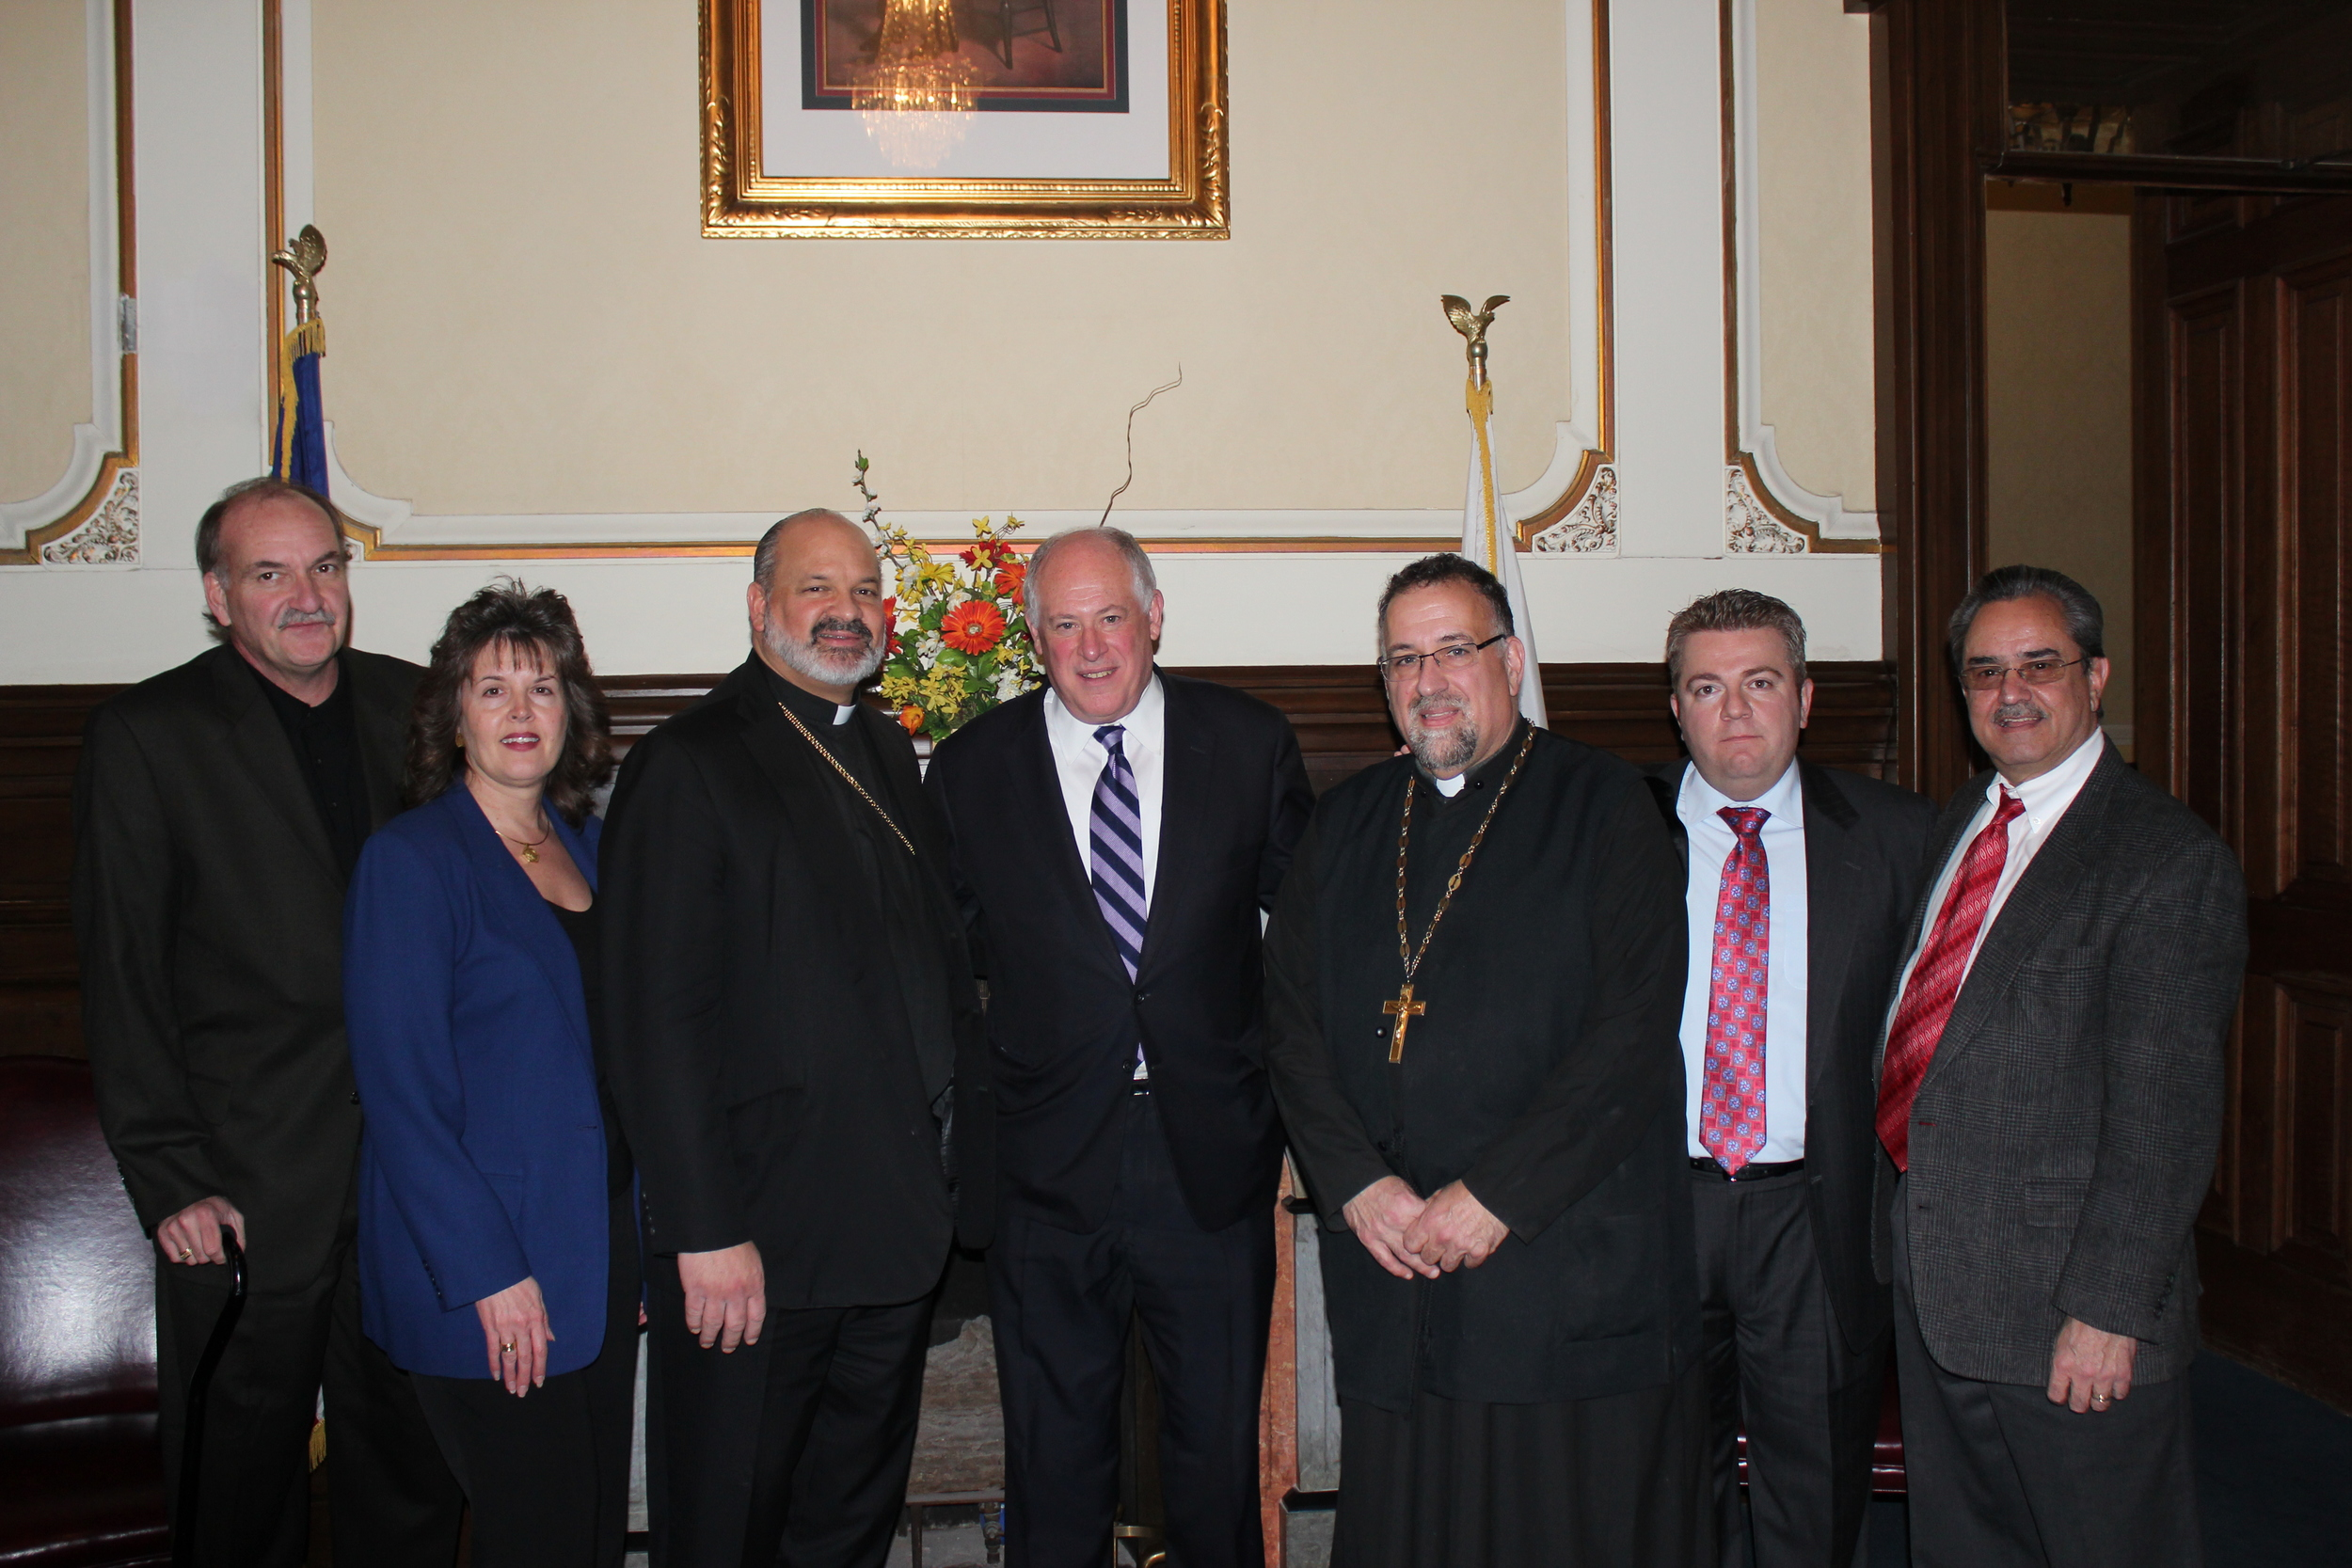 In the Office of the Governor. From left to right: Frank and Katena Lagouros, His Grace Bishop Demetrios, Governor Pat Quinn, Fr. George Pyle, George Vranas and Nick Xamis.